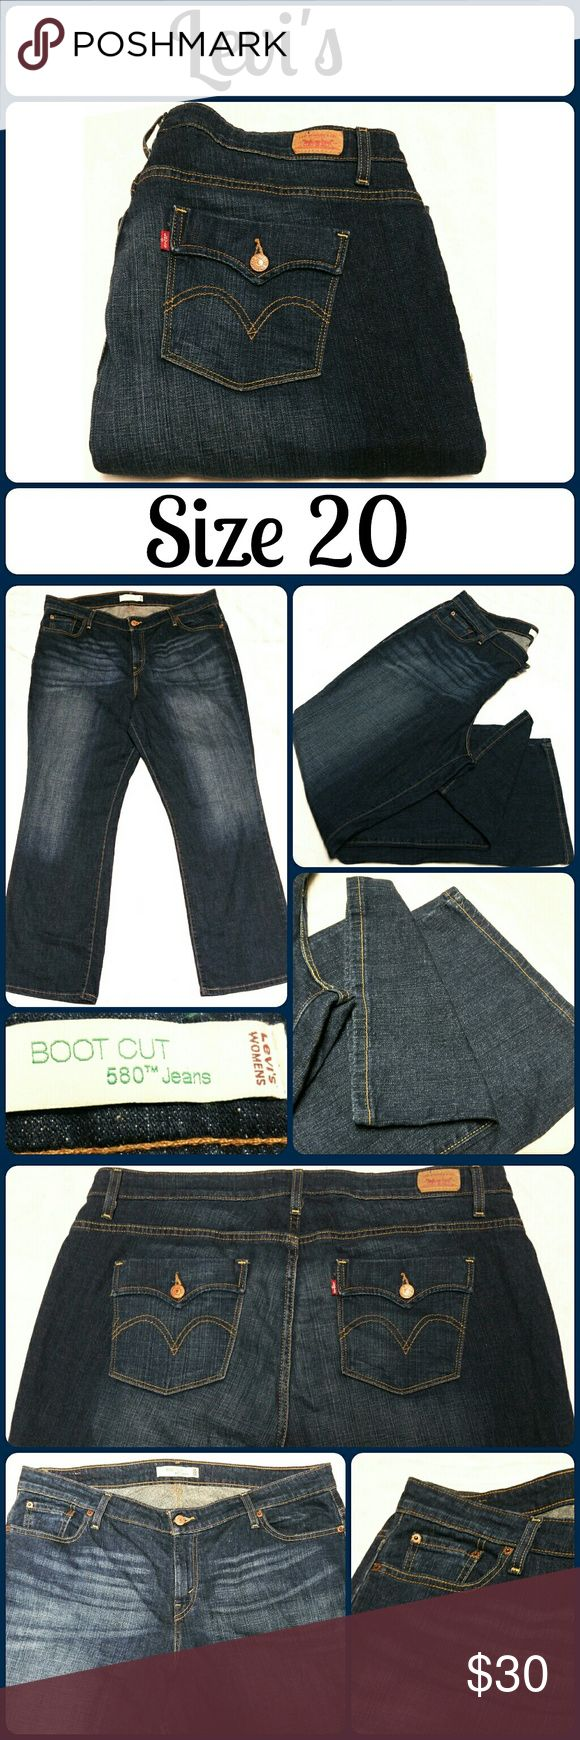 """Sz 20m Levi's 580 boot cut, Unique Pocket Design Medium Wash, Barely Used. Good as brand new. This jeans has contoured waistline to flatter you in the right places, without bagginess around the legs, it elongates your legs. 98% Cotton, 2% Elasthanne. Waist 42"""", Inseam 32"""", Rise 12? No rips, tears, or stains, no wear anywhere, no wear on bottom hems either  ... From a smoke-free, dog friendly home, No trades (T89) Levi's Jeans Boot Cut"""